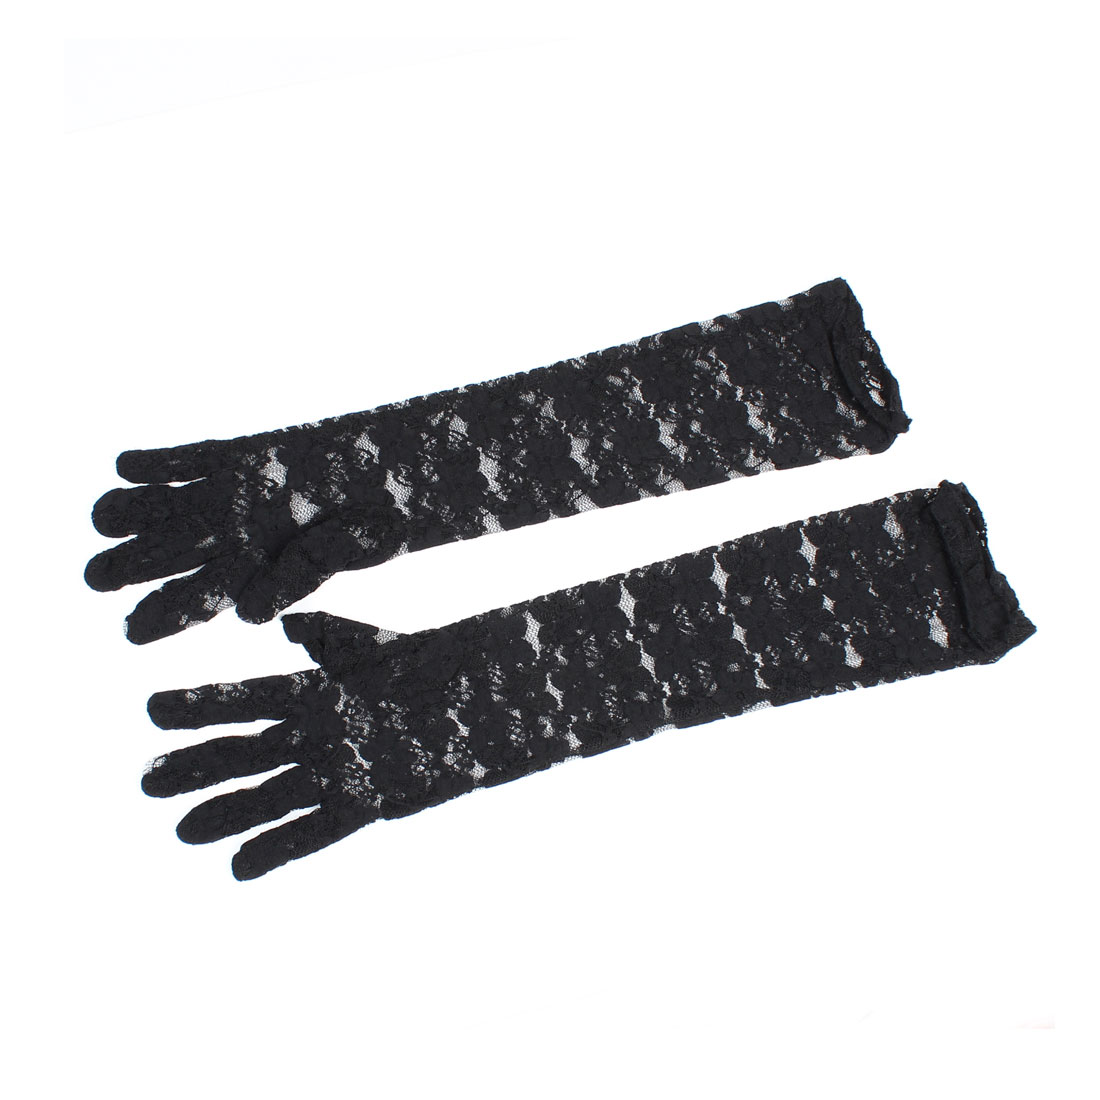 Pair Wedding Fullfinger Arm Warmer Opera Length Lace Gloves Black for Lady